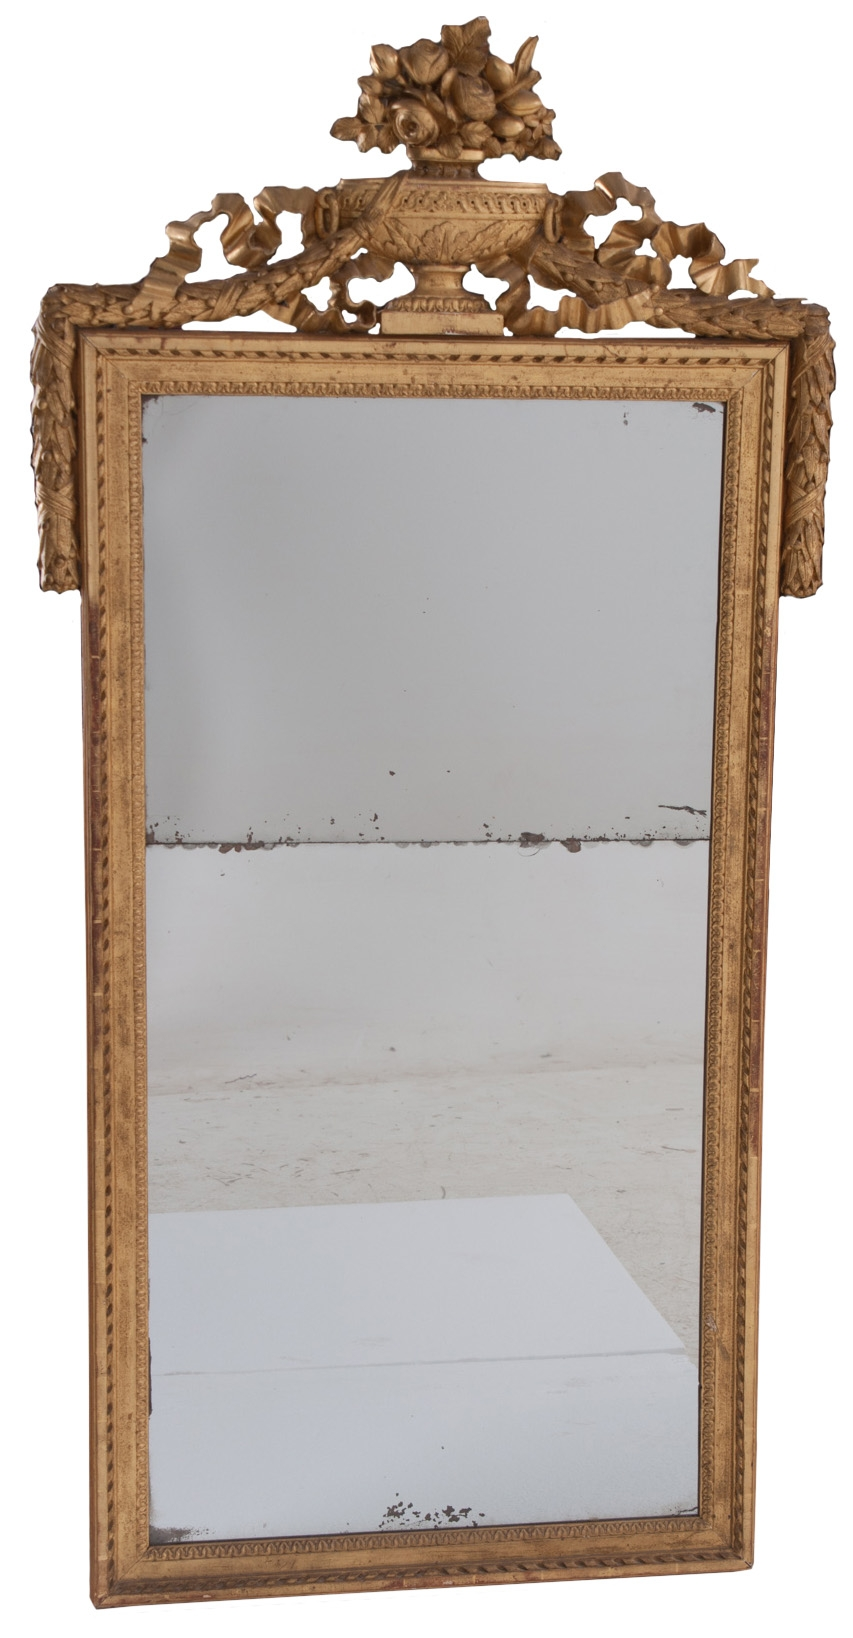 French 19th Century Gold Gilt Mirror With Urn For Gold Gilt Mirrors (Image 5 of 15)